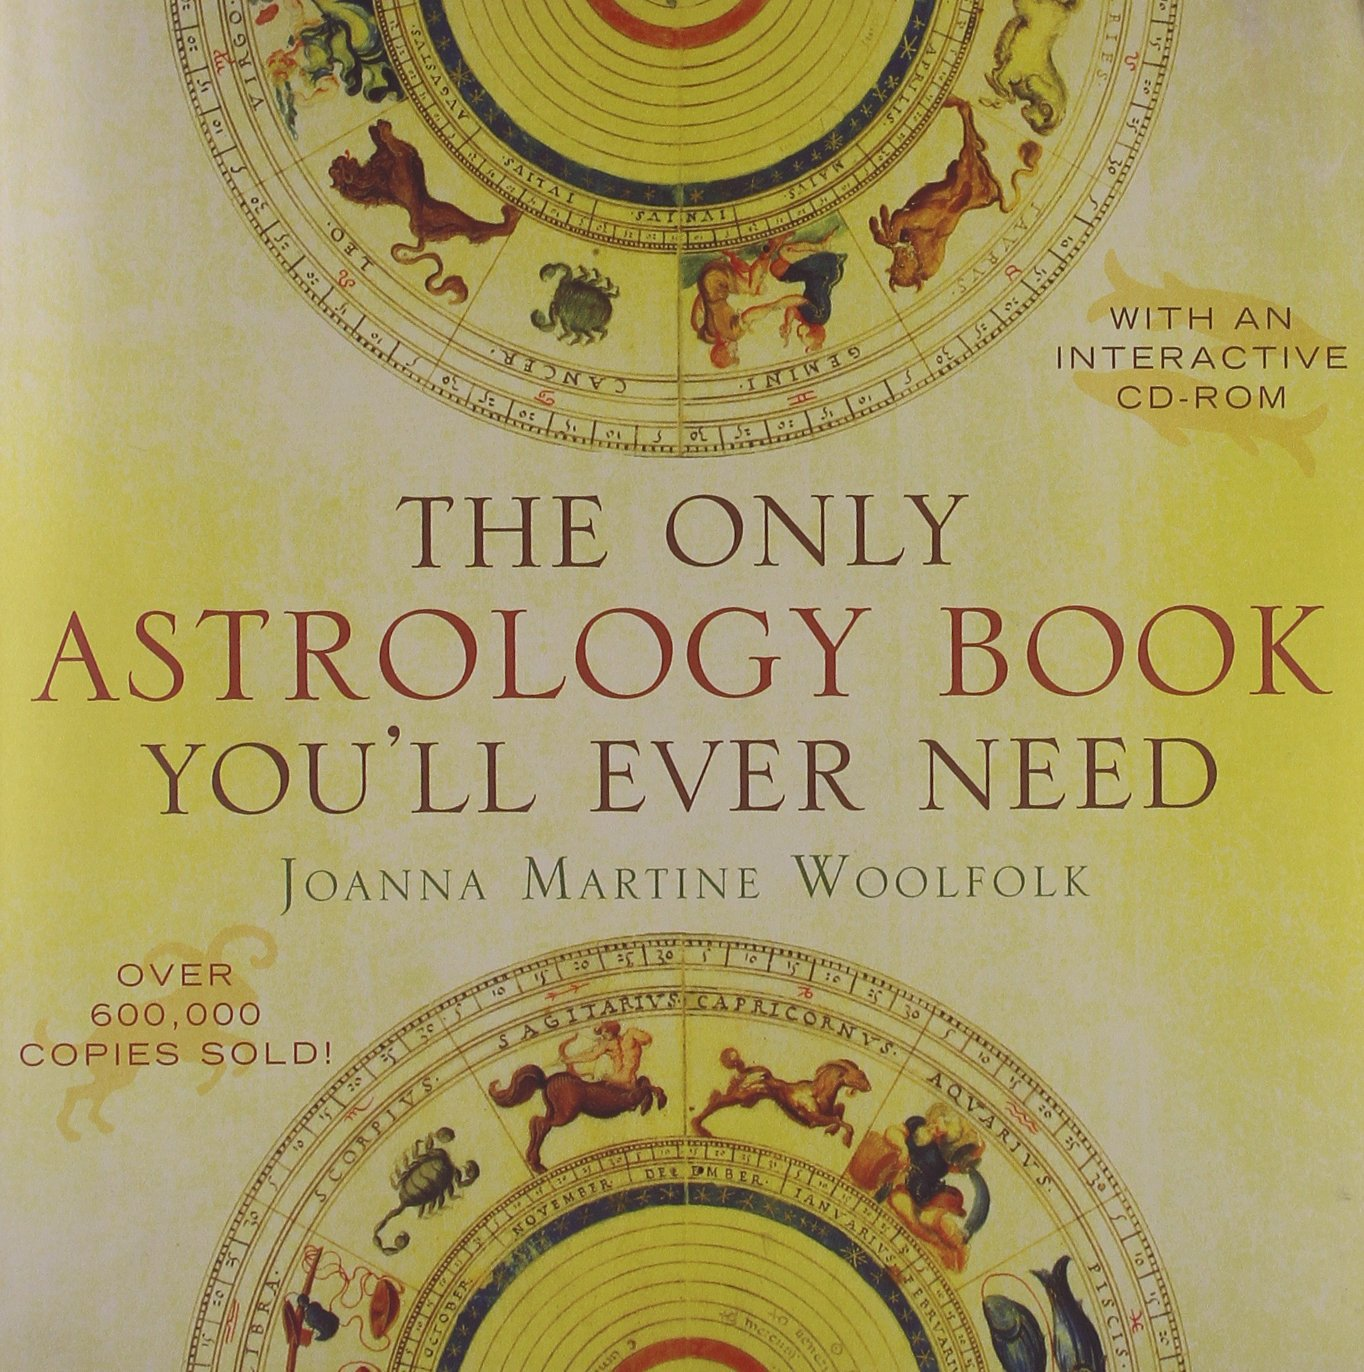 Only Astrology Book You'll Ever Need